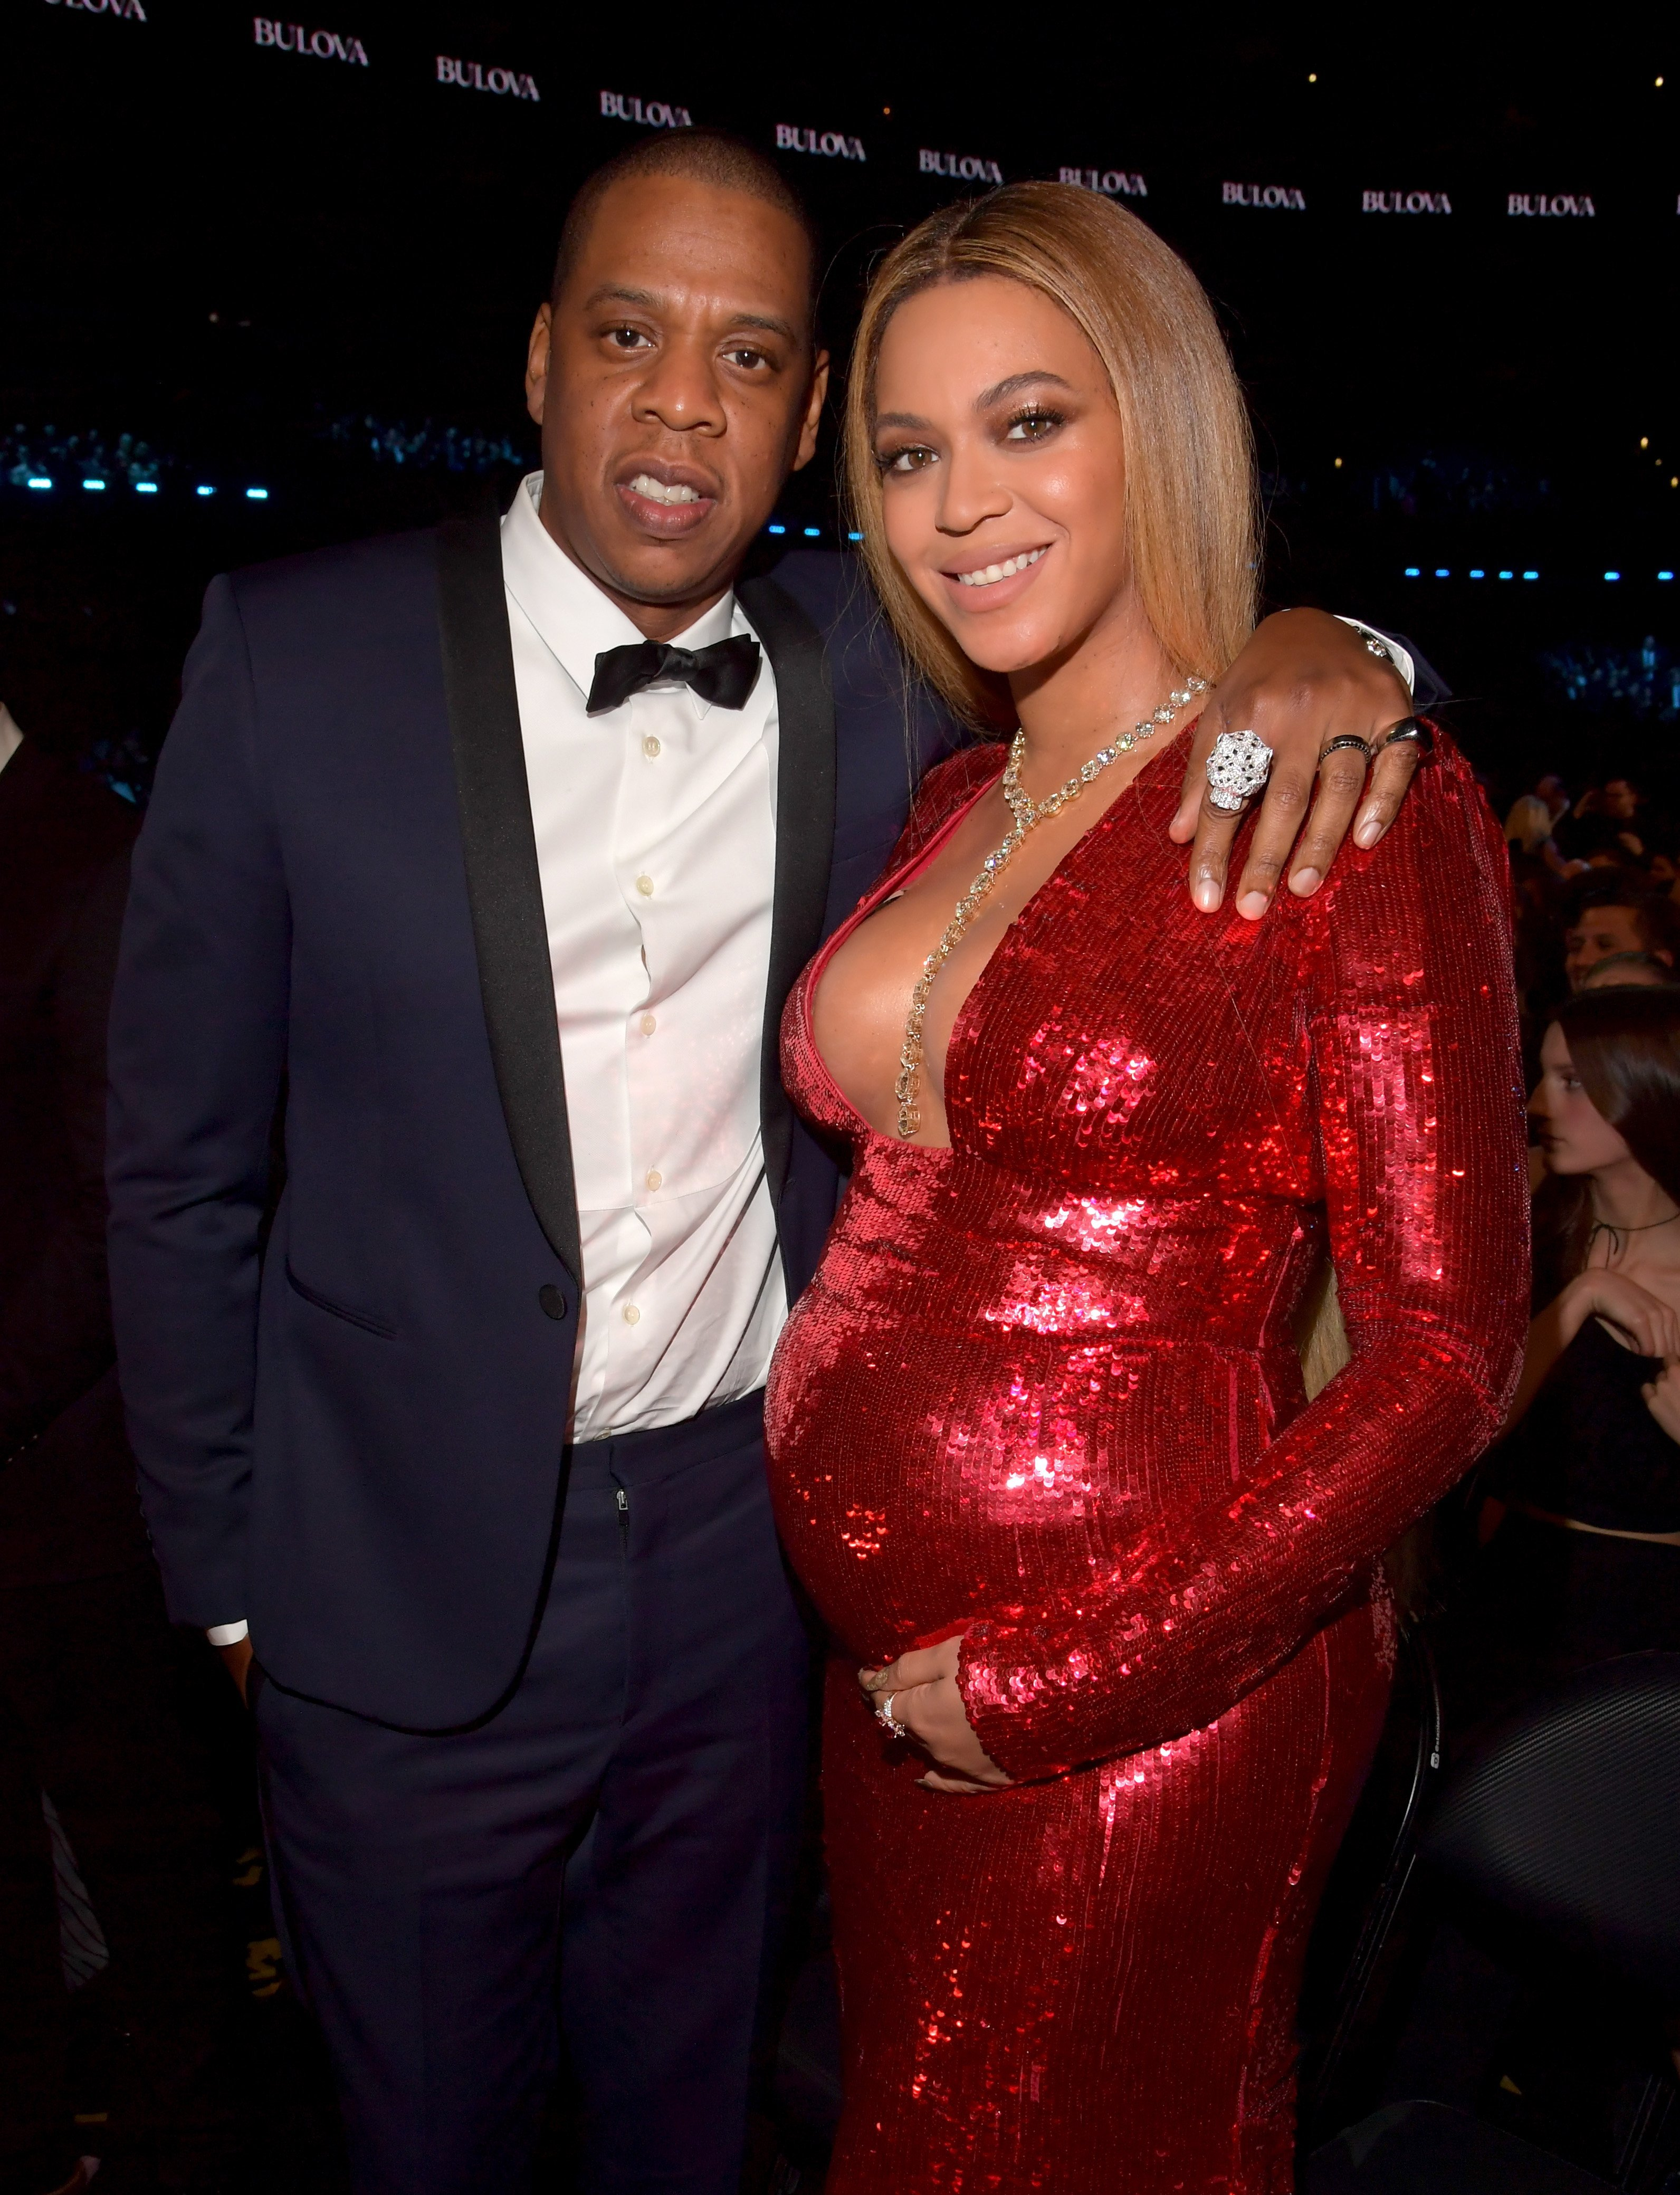 Jay Z and Beyoncé attend The 59th Grammy Awards at Staples Center on February 12, 2017 in Los Angeles, California l Source: Getty Images